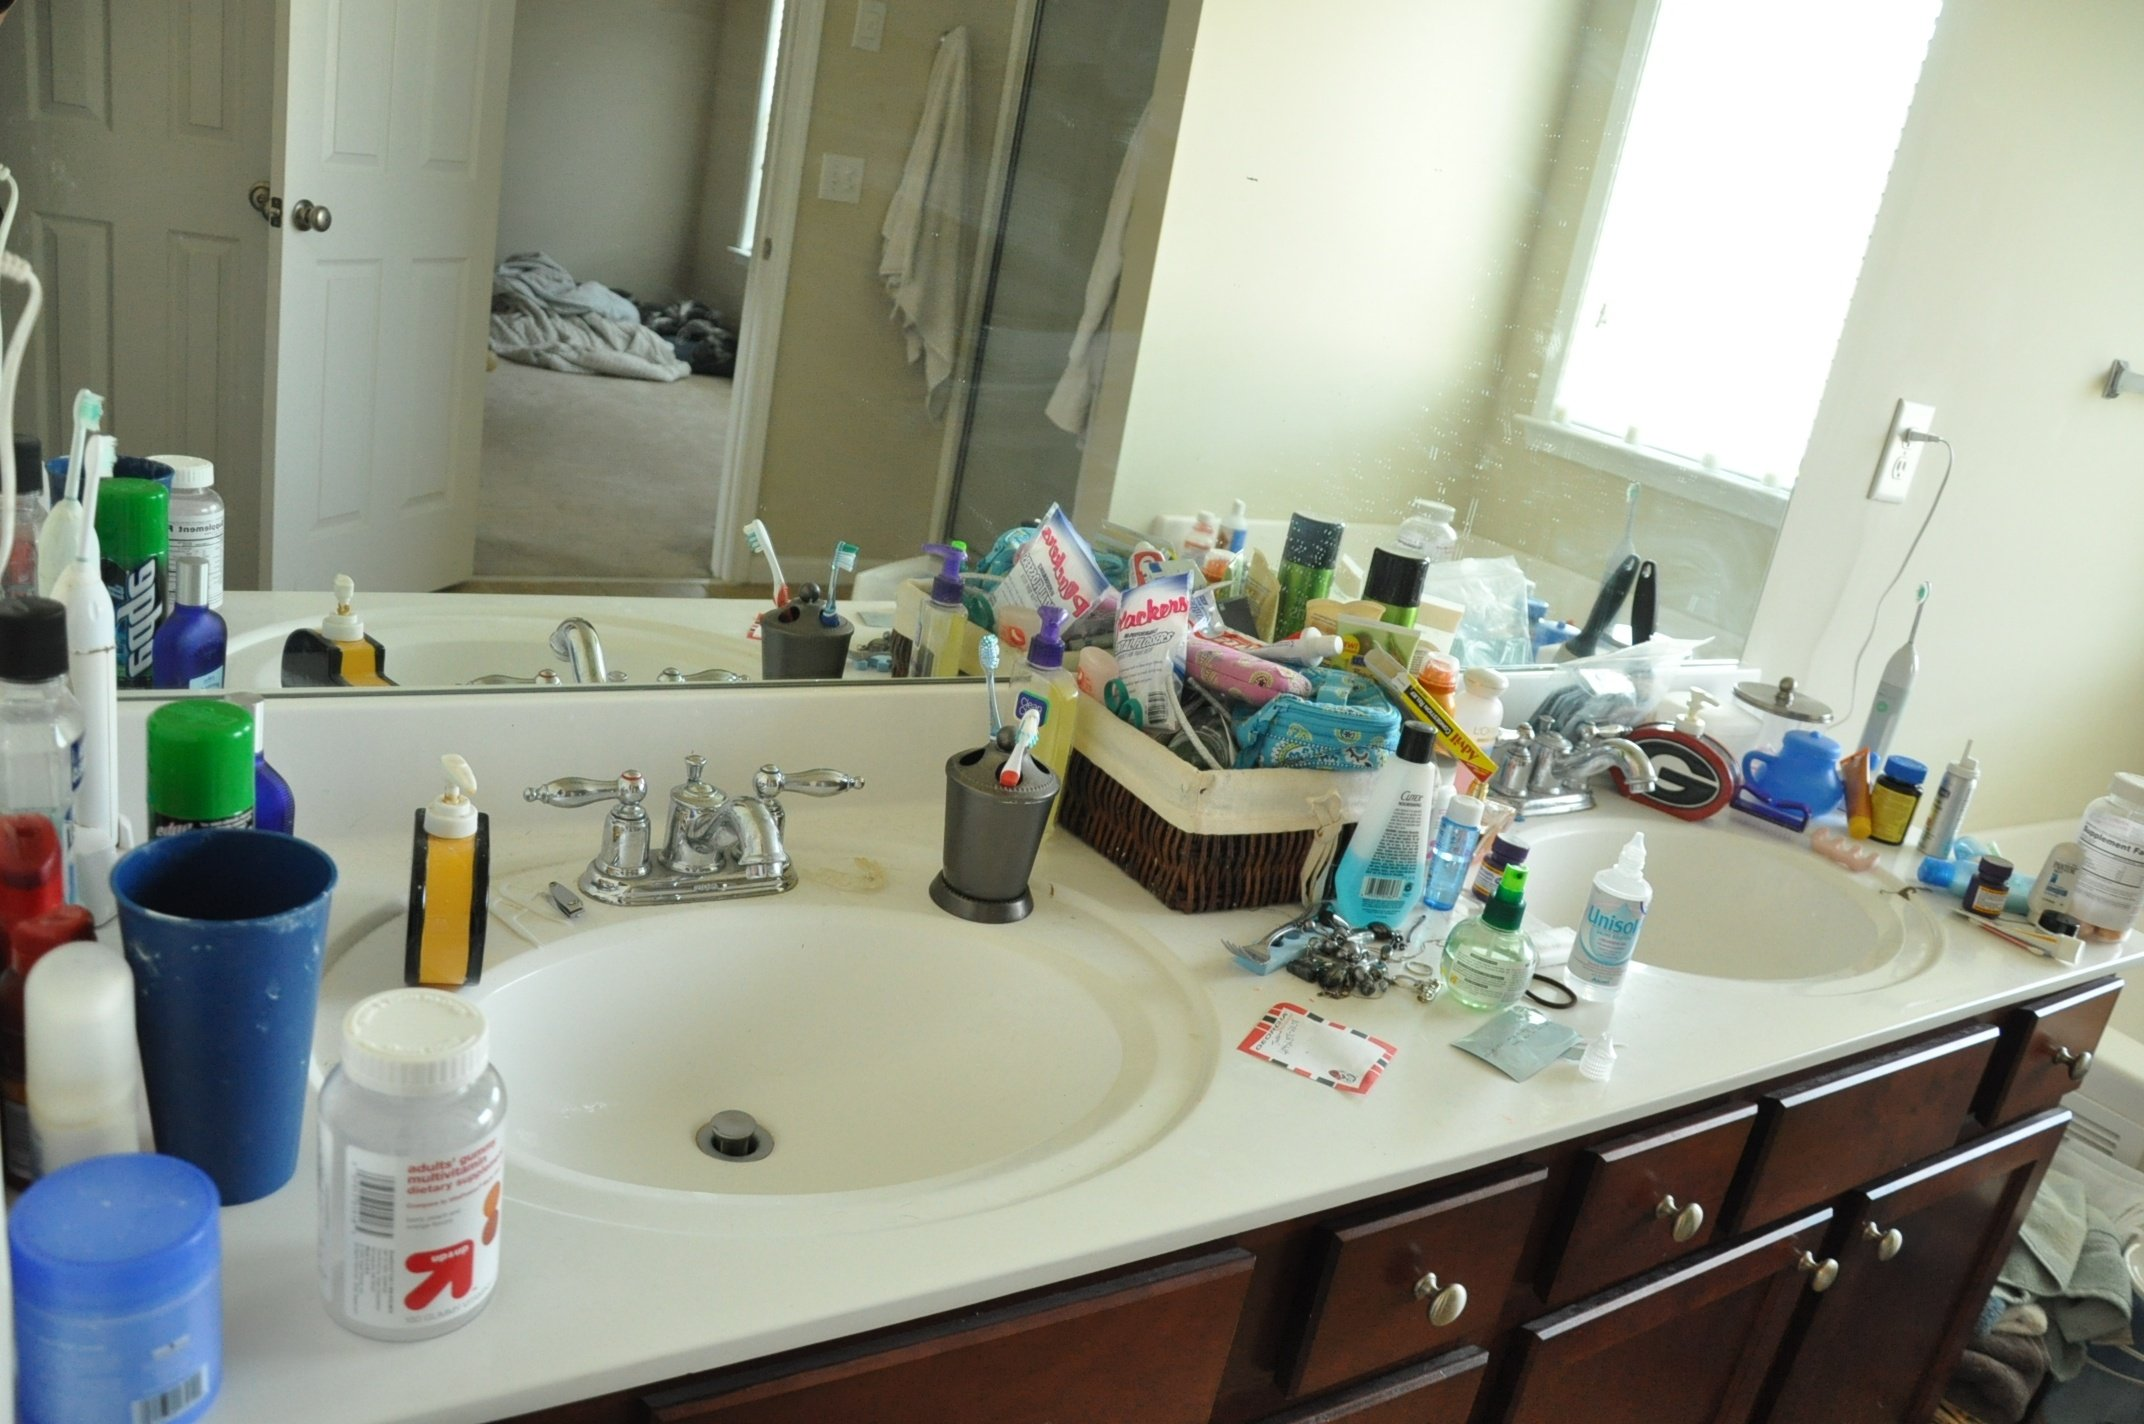 6 Easy Ways to Clear Out Bathroom Clutter This Weekend - Clear the Countertop